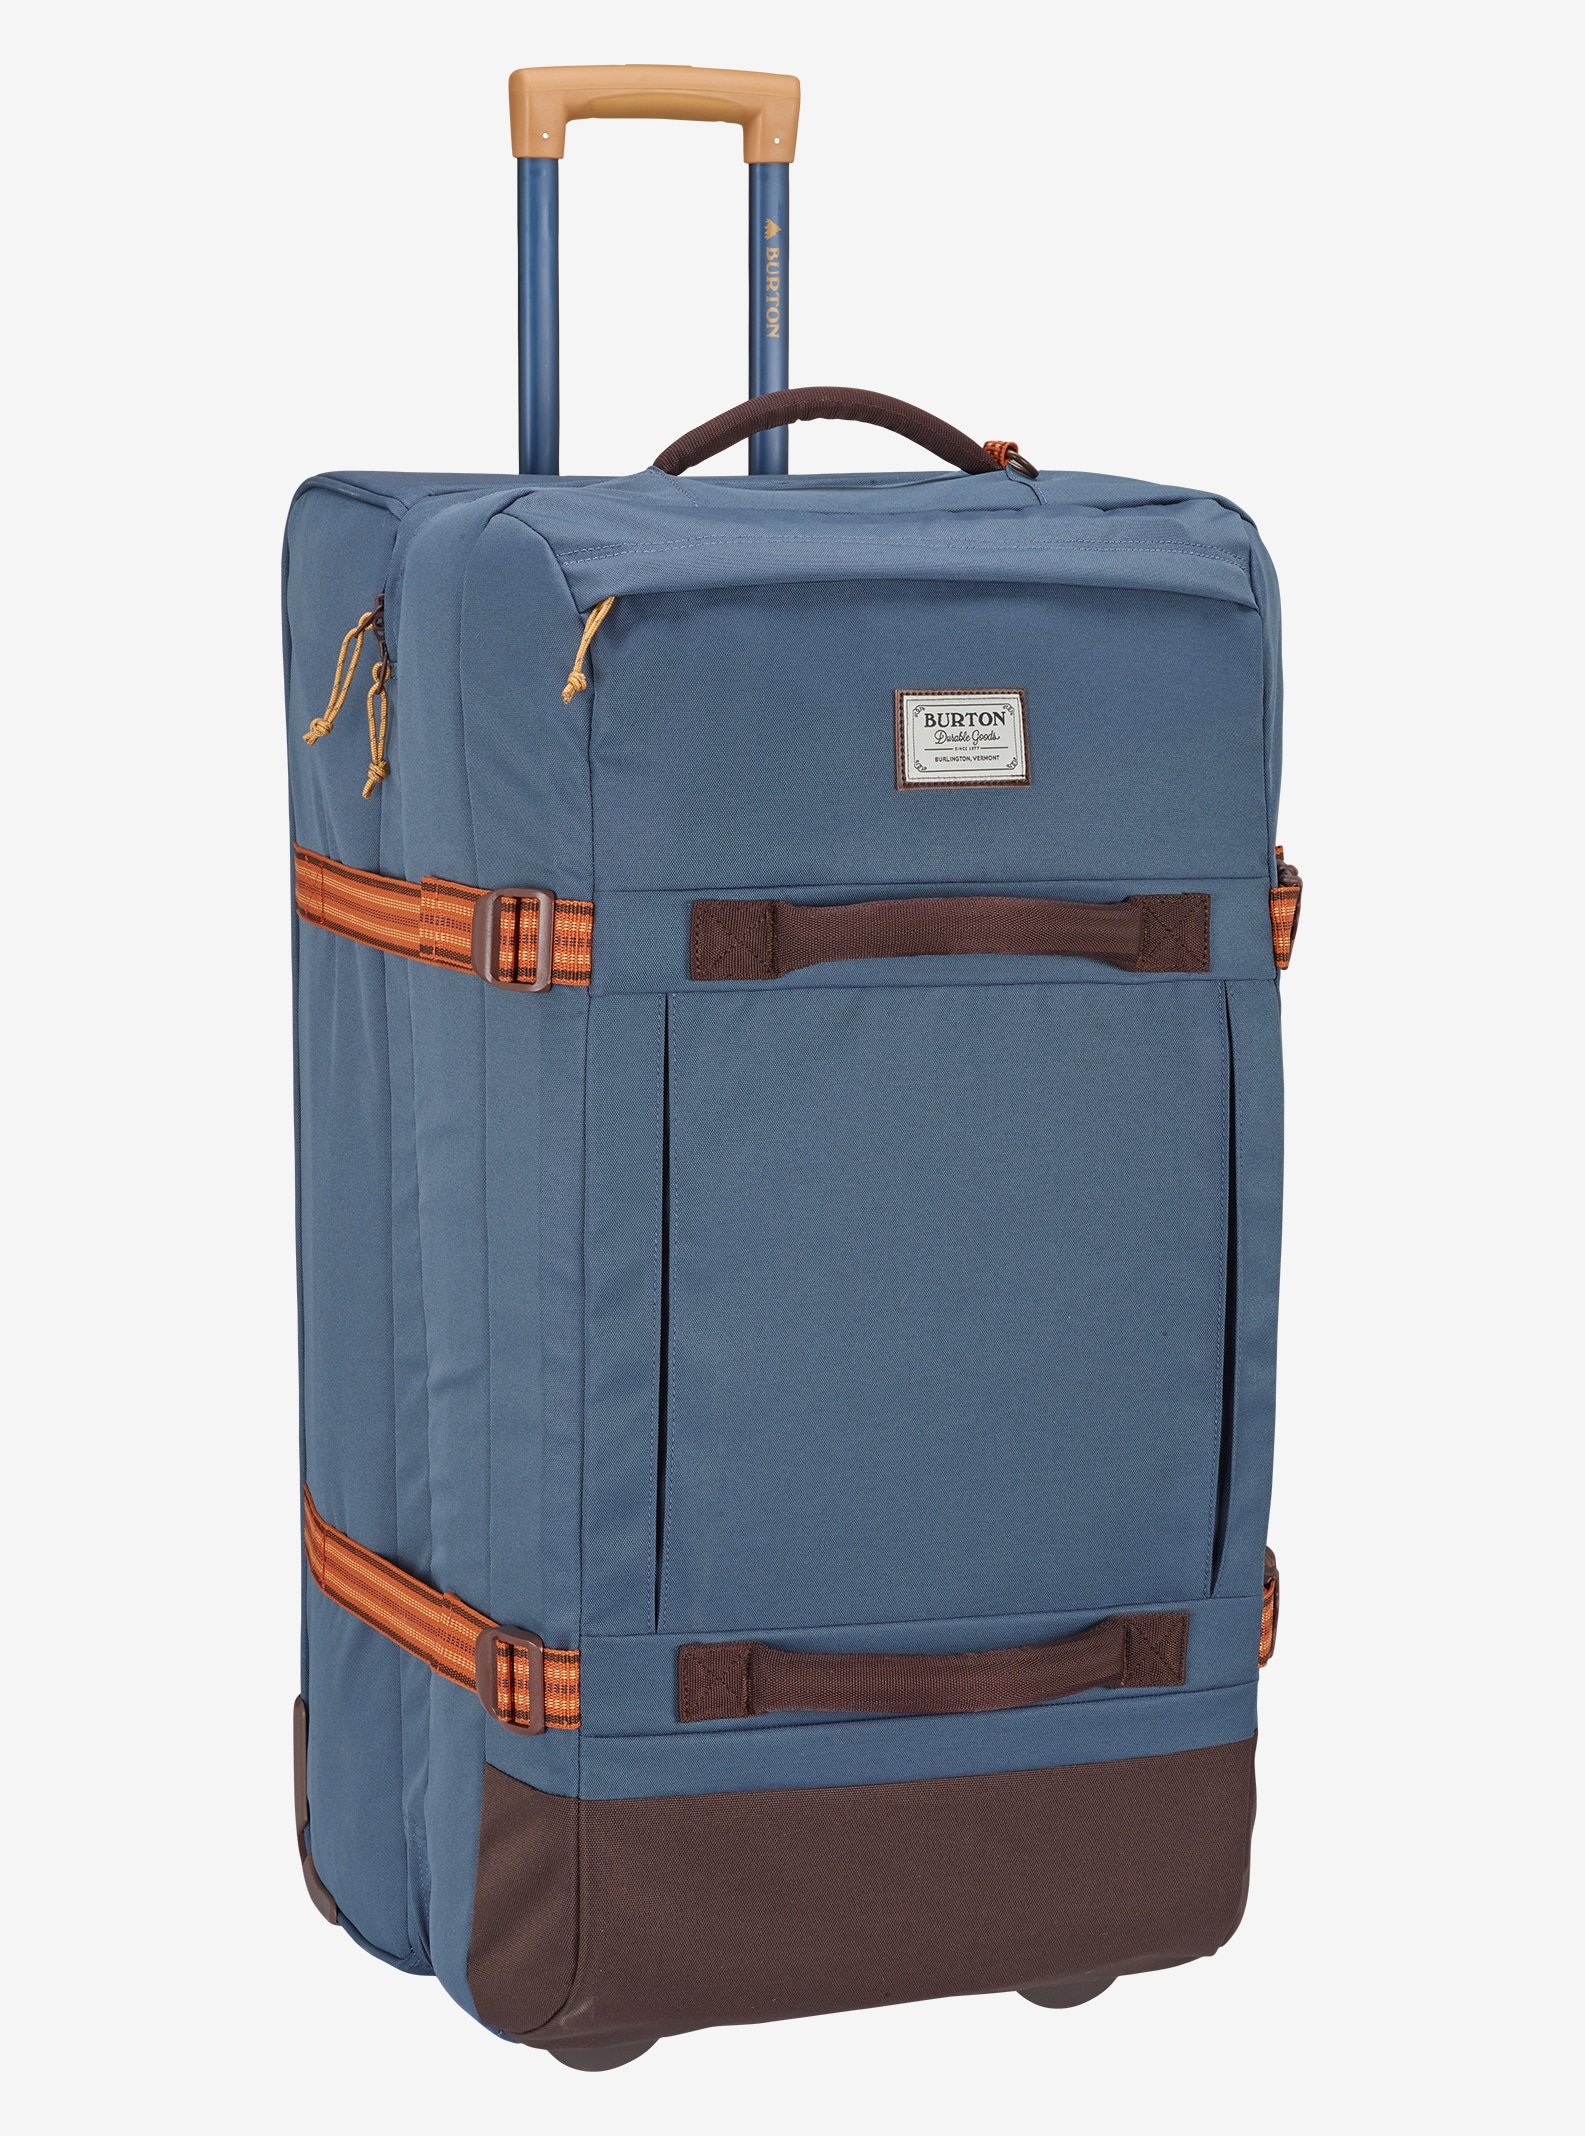 Burton Exodus Roller Travel Bag shown in Washed Blue